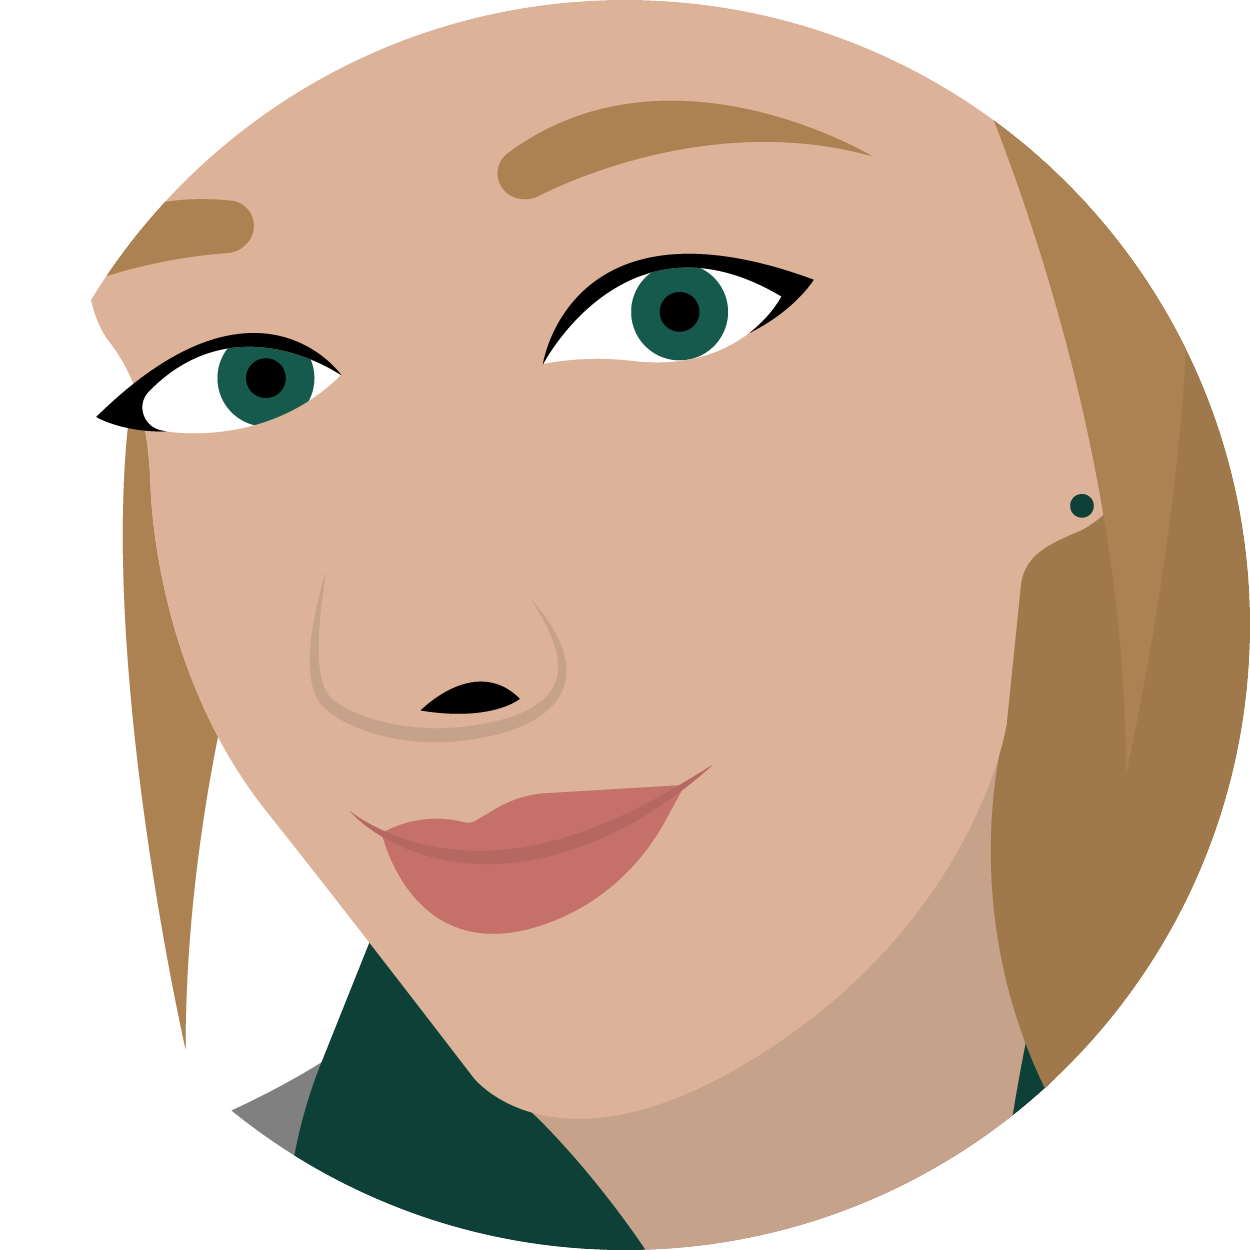 An illustration of the designer, Jennifer Sommerfeld